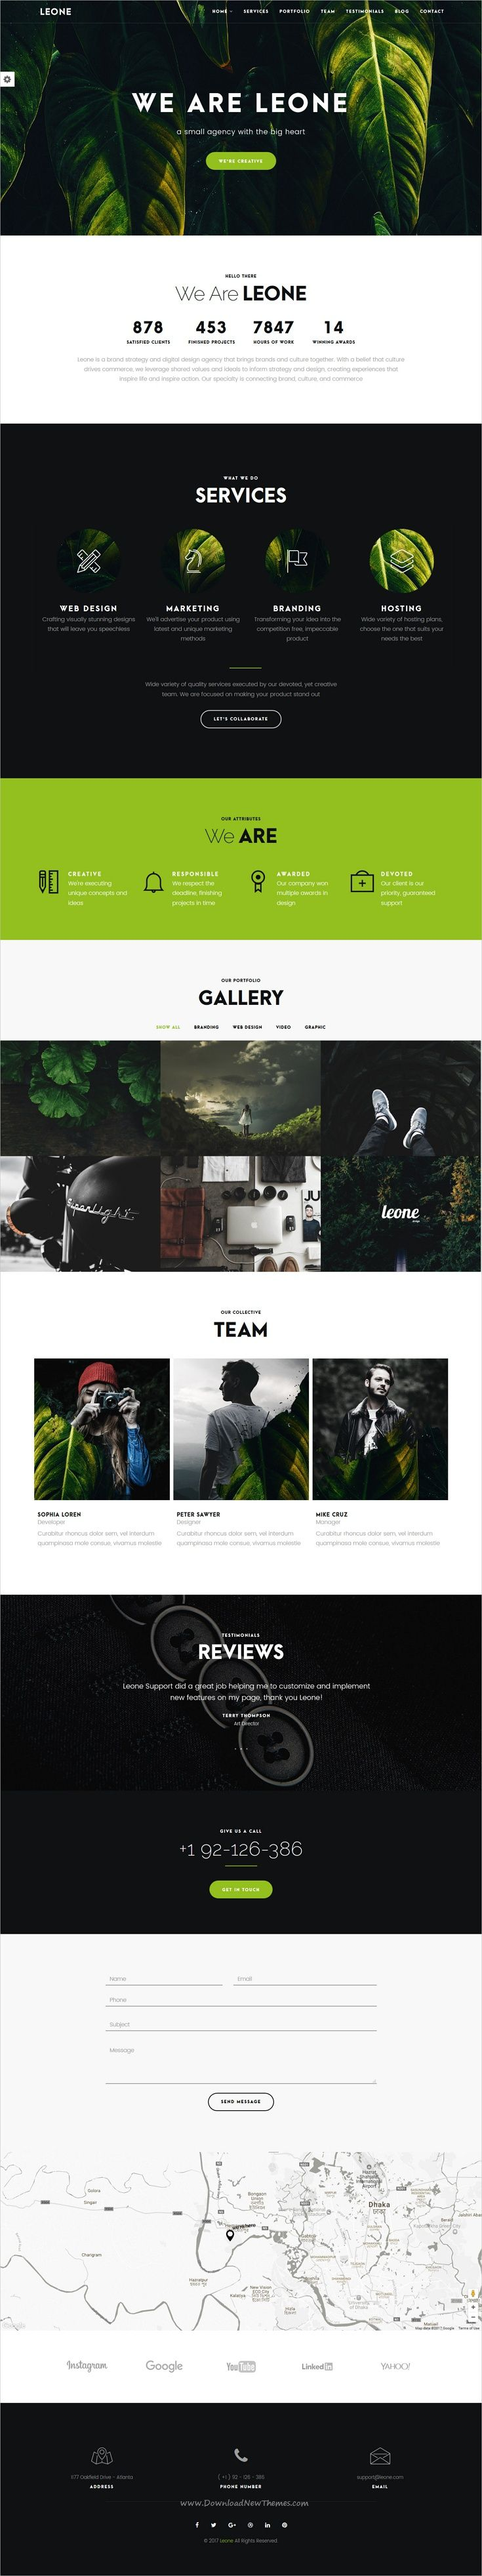 Leone is a wonderful multipurpose responsive #Joomla template for #onepage #business websites download now➩ https://themeforest.net/item/leone-one-page-multi-purpose-joomla-template/19327305?ref=Datasata